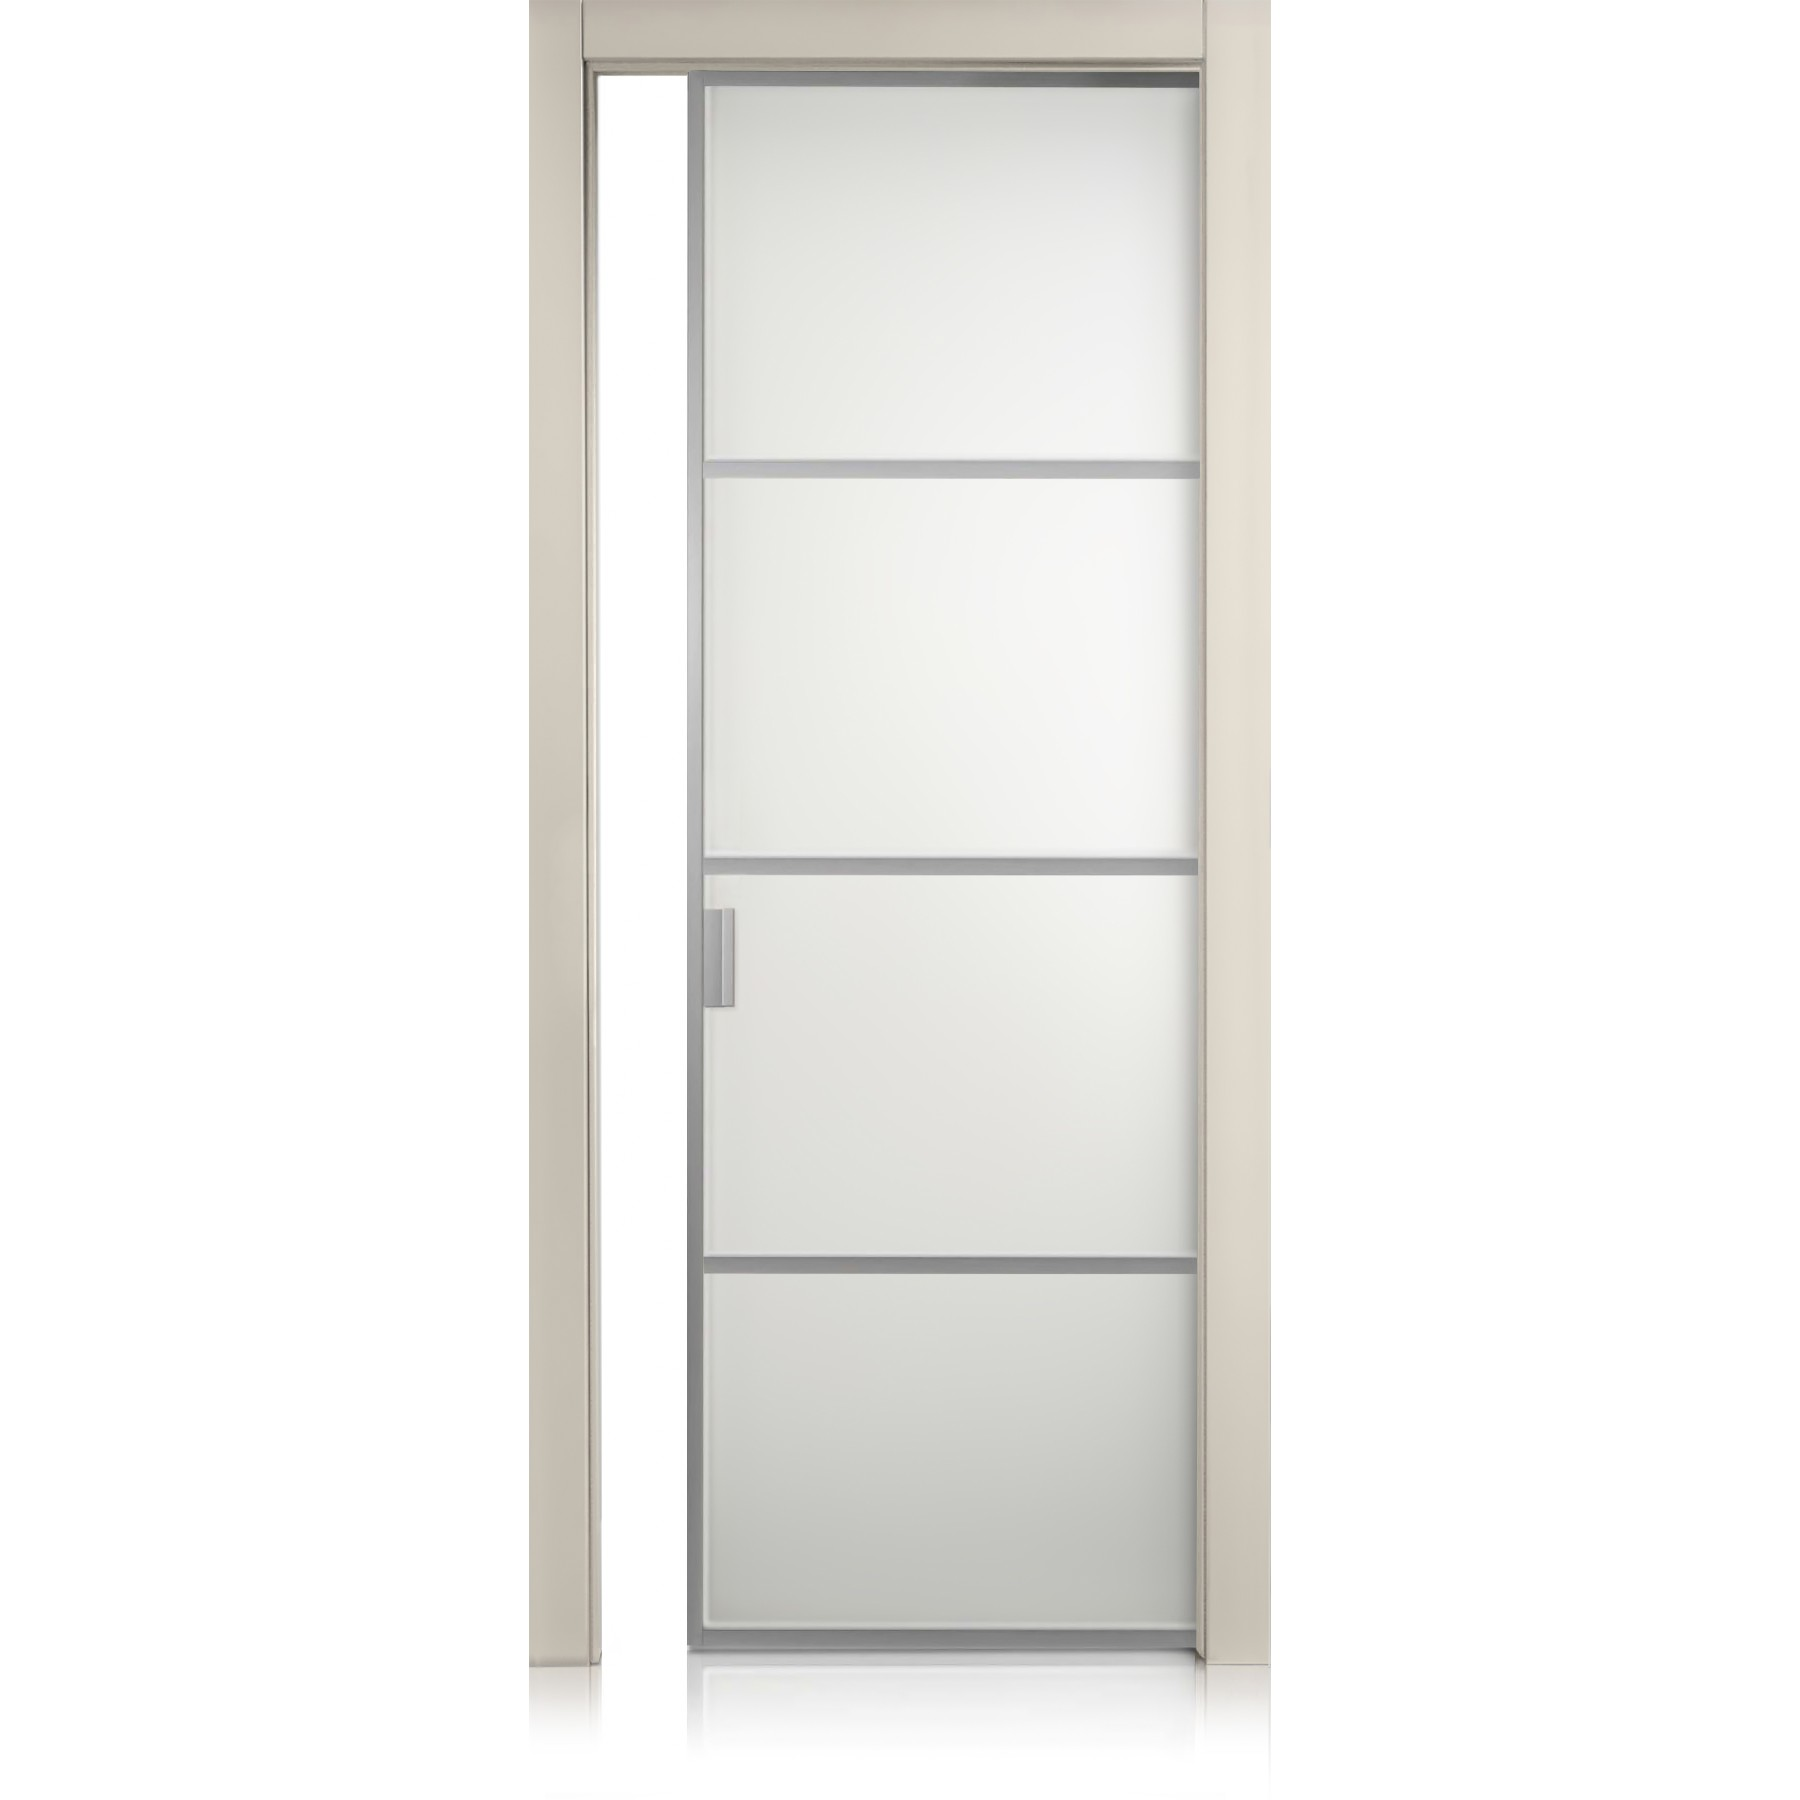 Cristal Frame / 3 Two-colour glass (available in different colours) door